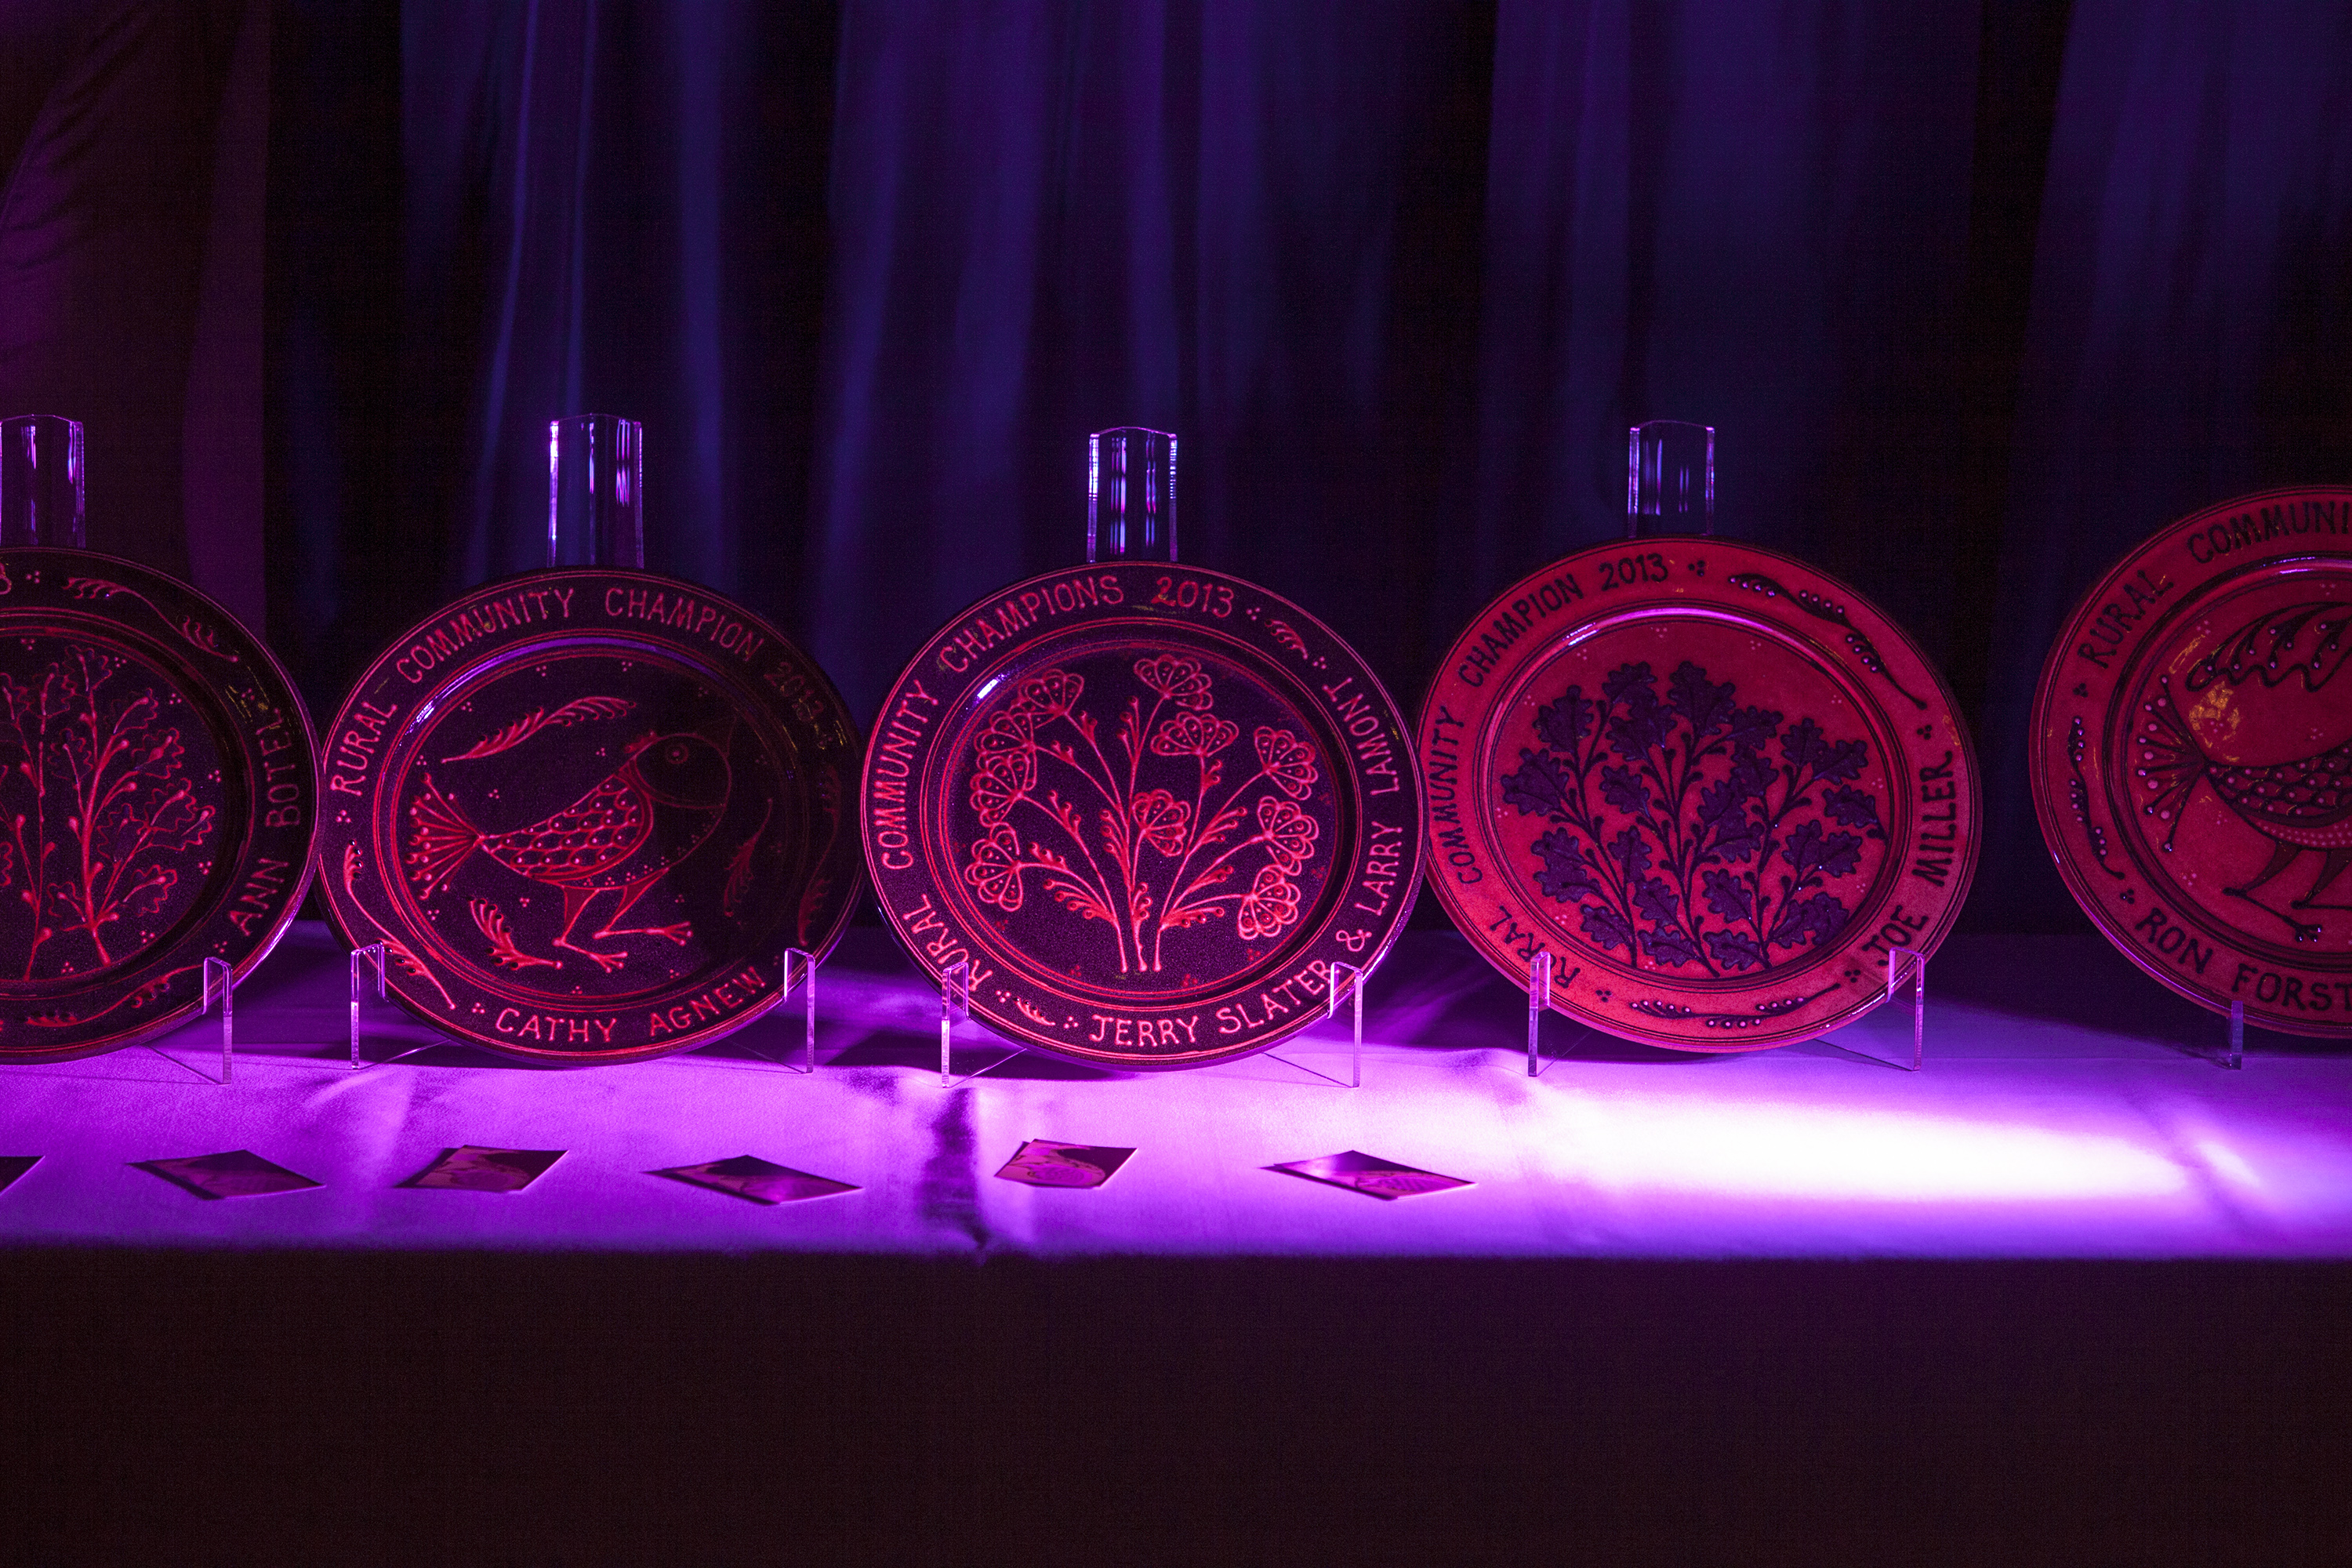 A picture of the rural award trophies